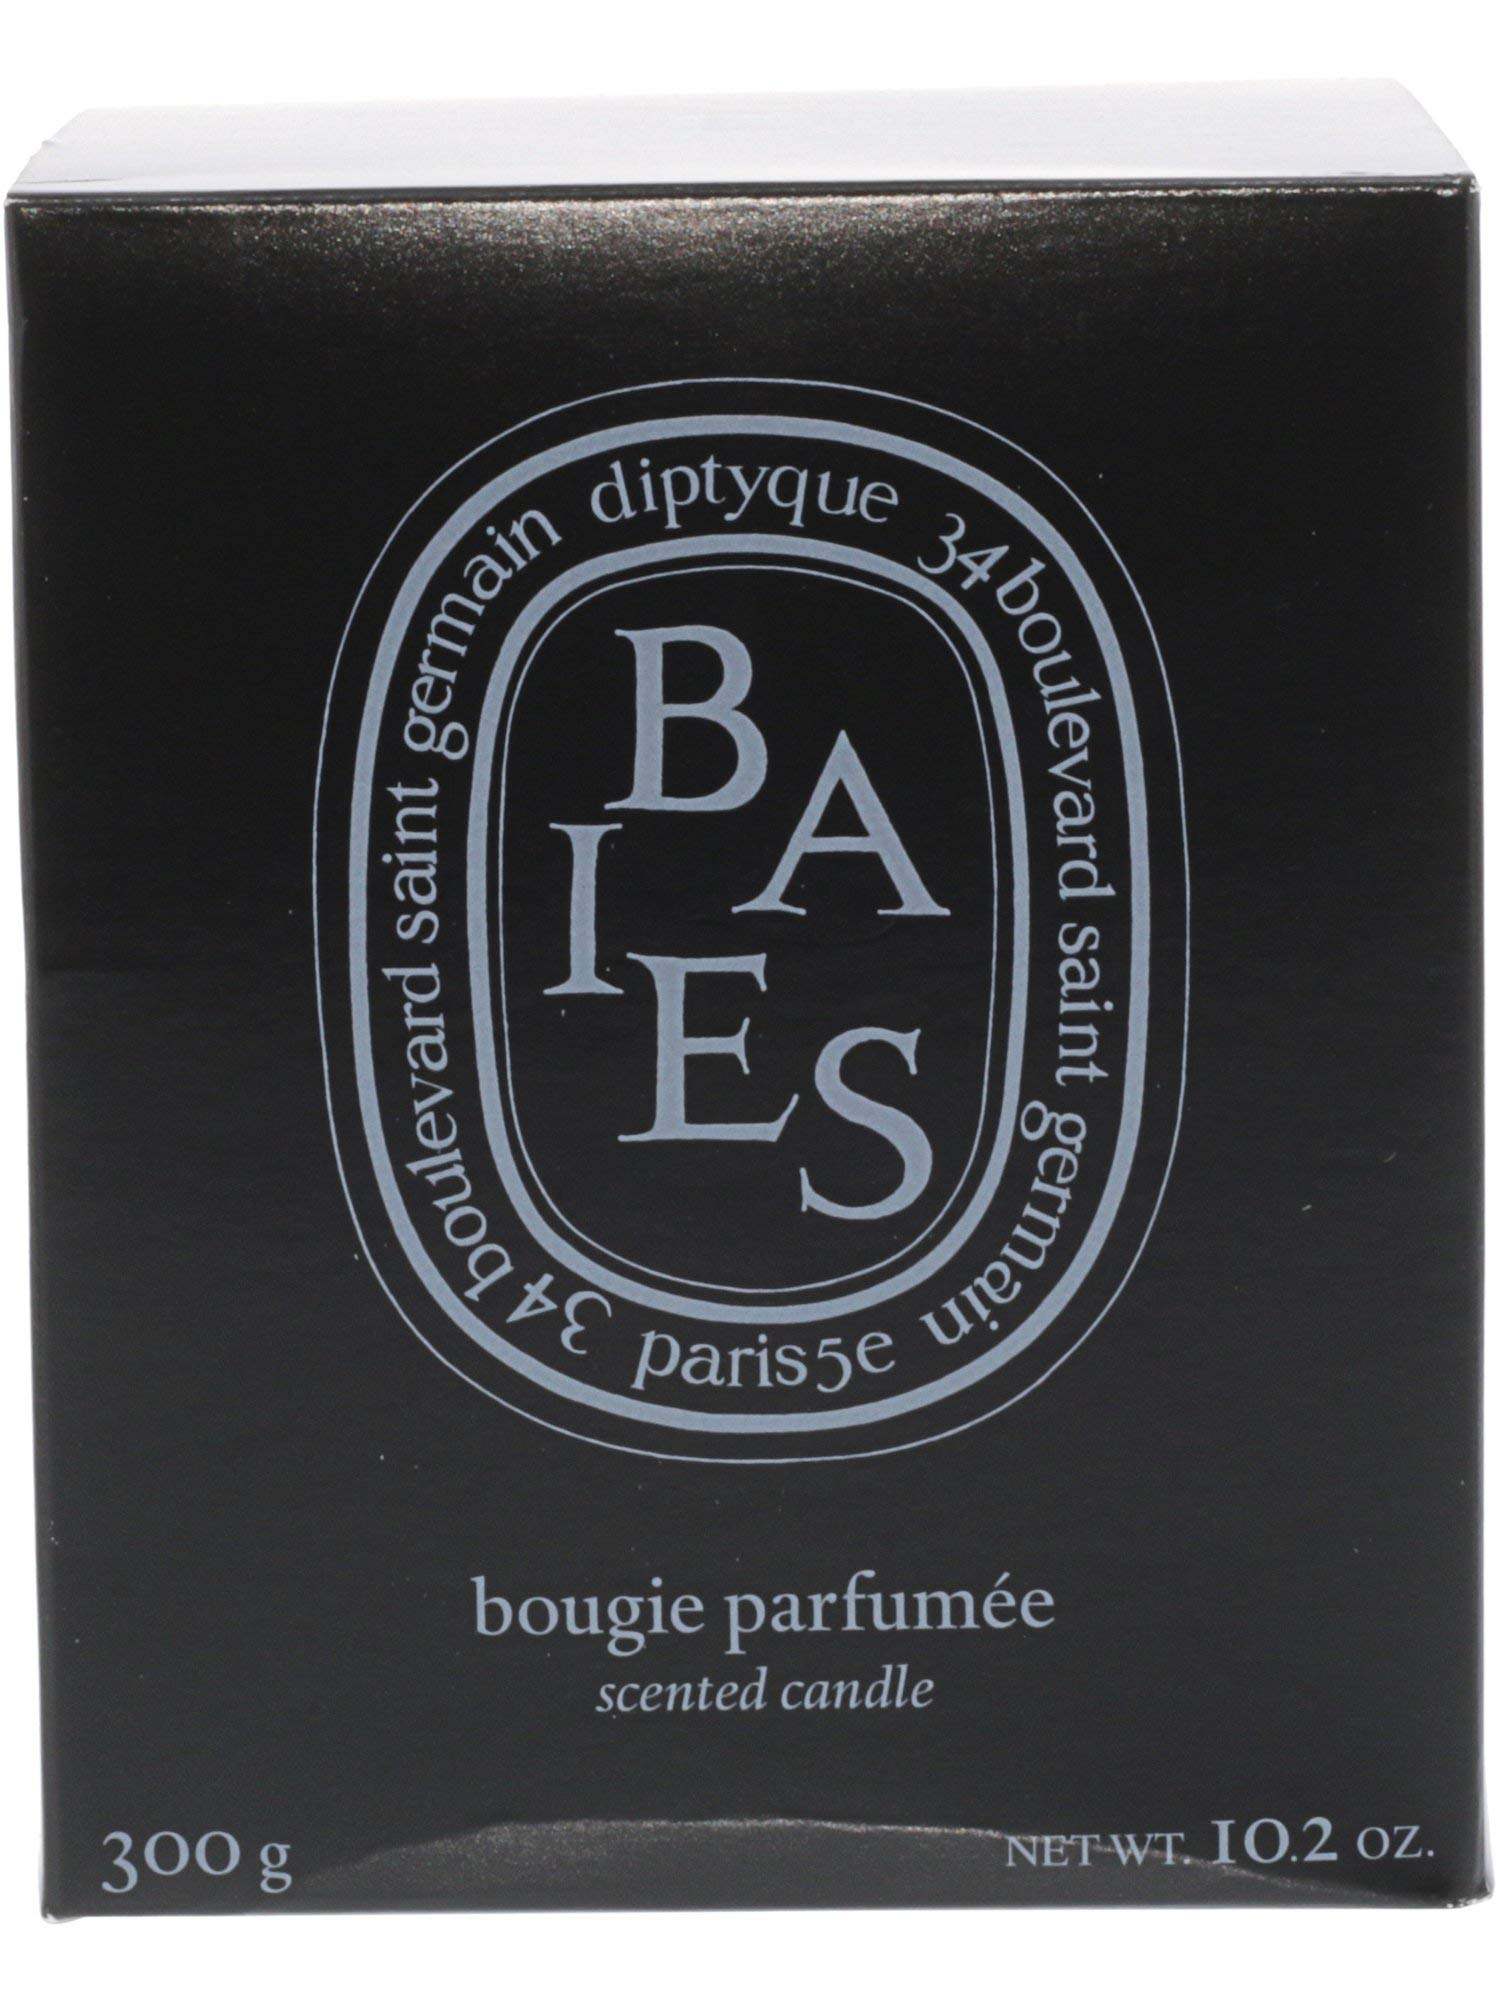 Diptyque Black Baies Scented Candle 300G 3700431404770